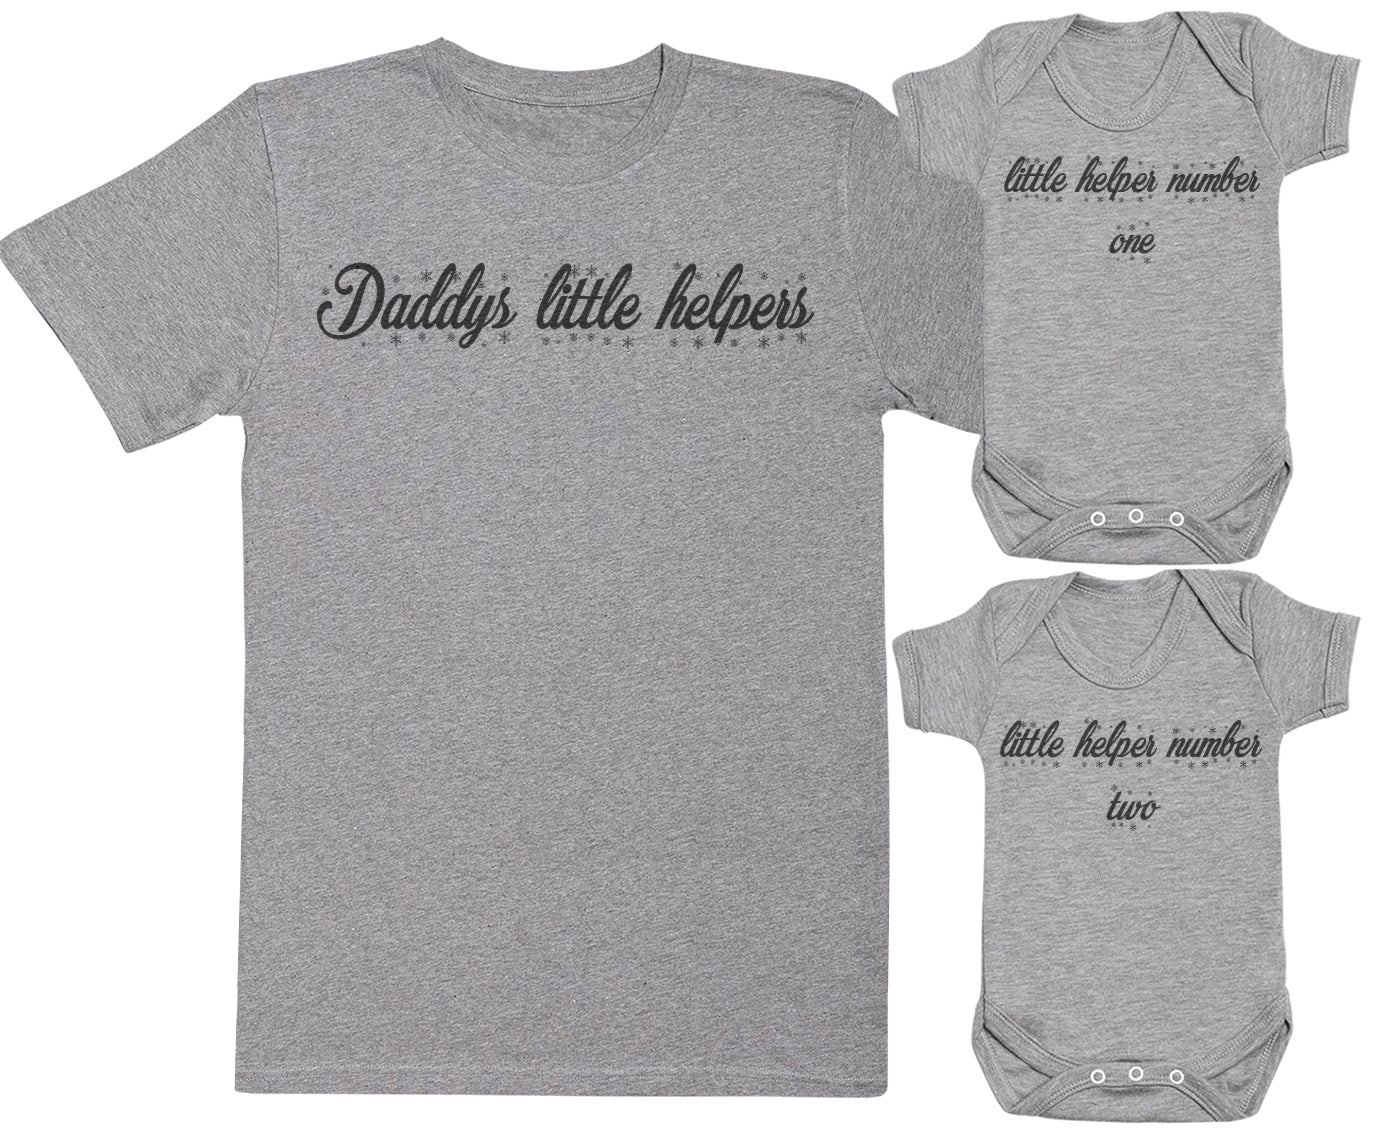 752cb389b Daddys Little Helpers - Baby Gift Set with Baby Bodysuit & Father's T-Shirt  - Grey - S & NB